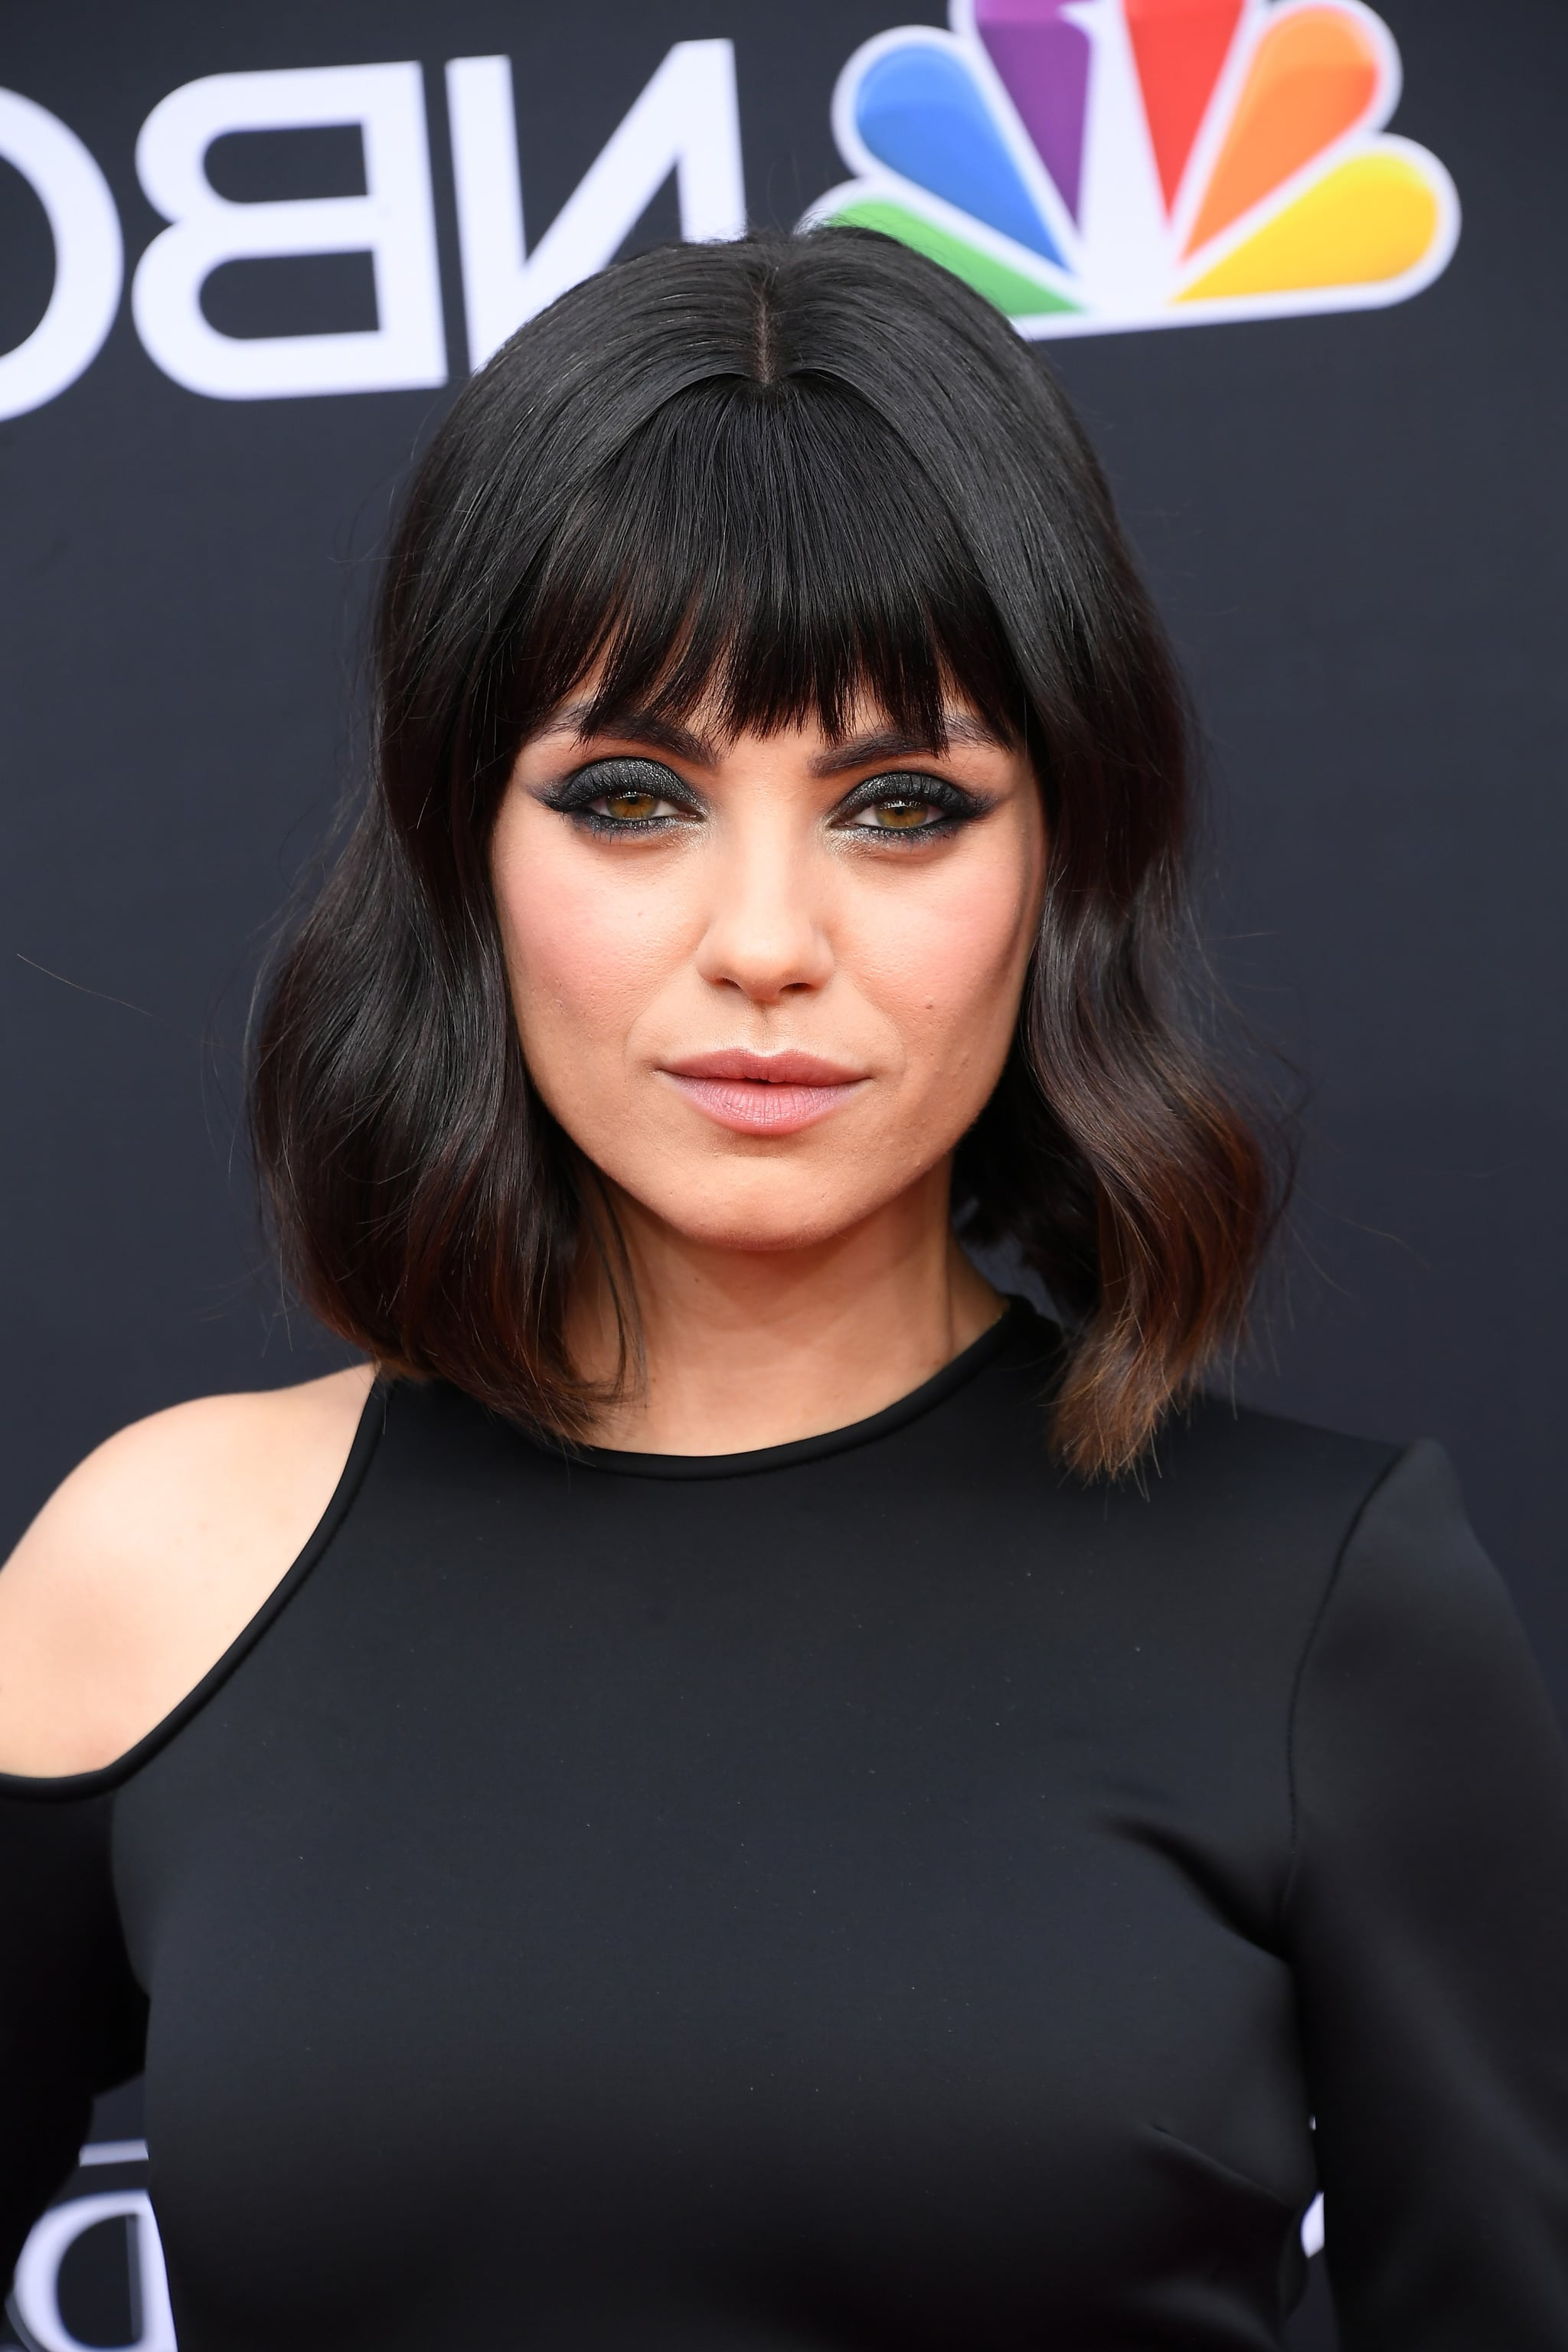 Mila Kunis With Bangs At The Billboard Music Awards 2018   Popsugar For Mila Kunis Short Hairstyles (View 18 of 25)